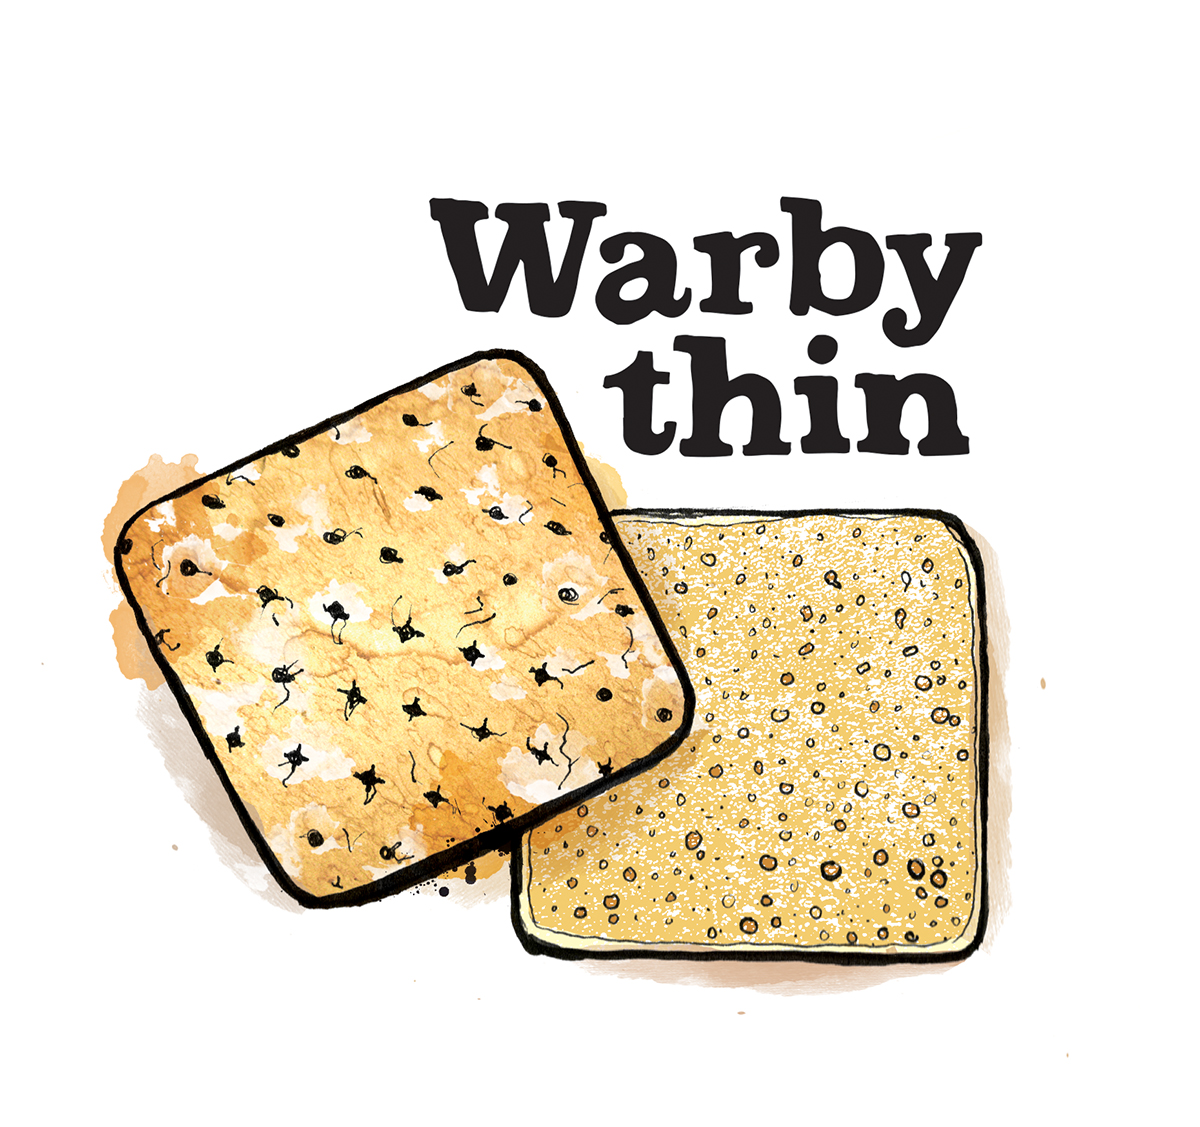 warby thin illustration, food illustration